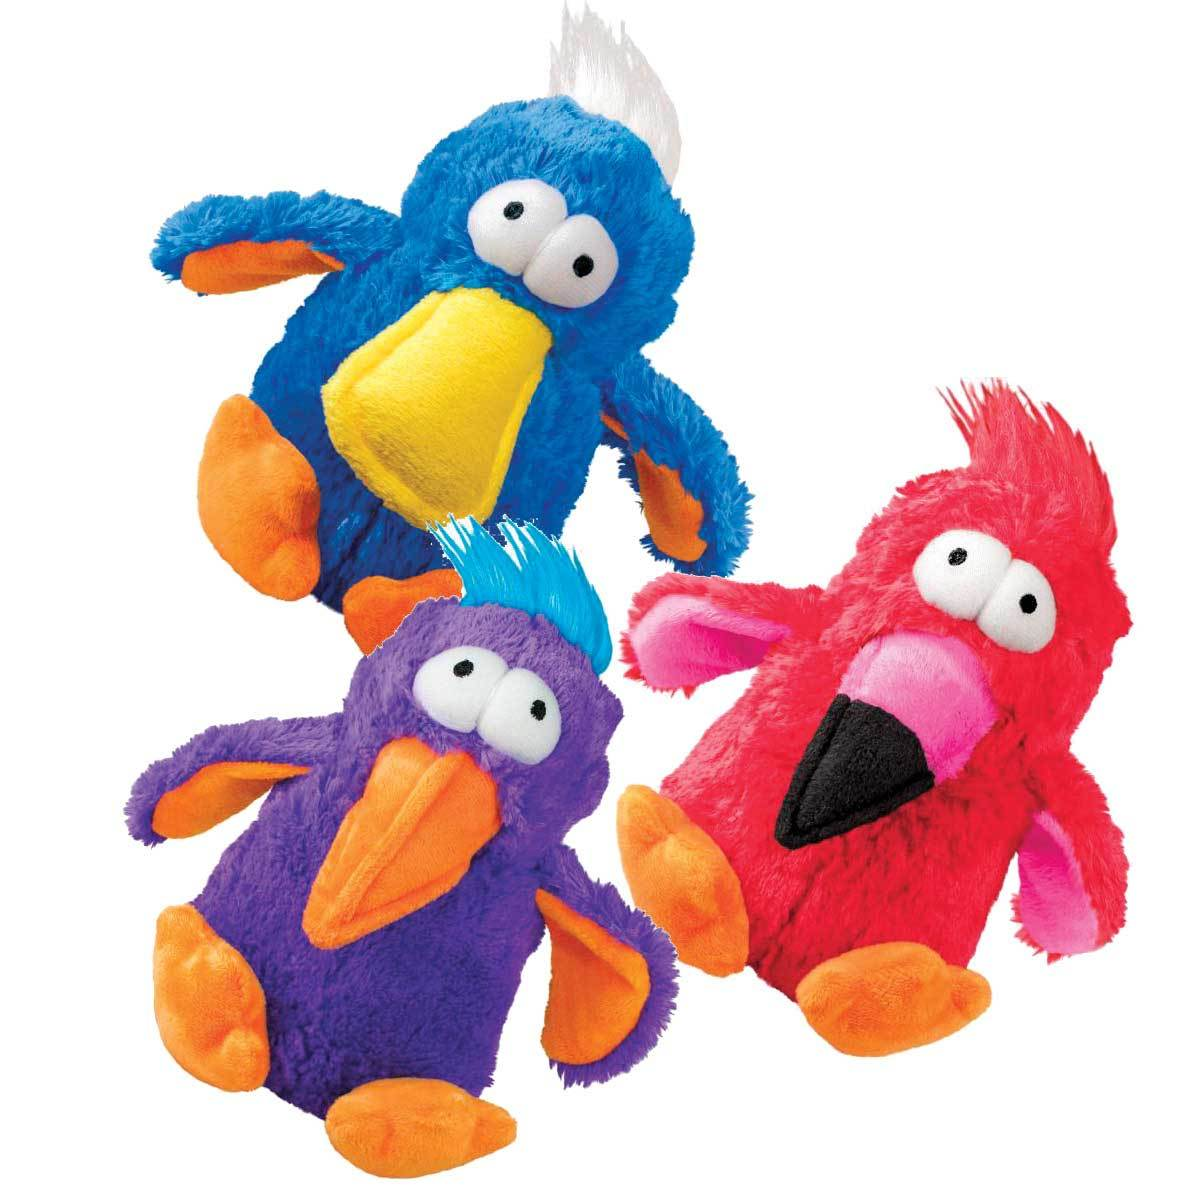 KONG Dodo Plush Squeaker Dog Toy in Assorted Colours image 0